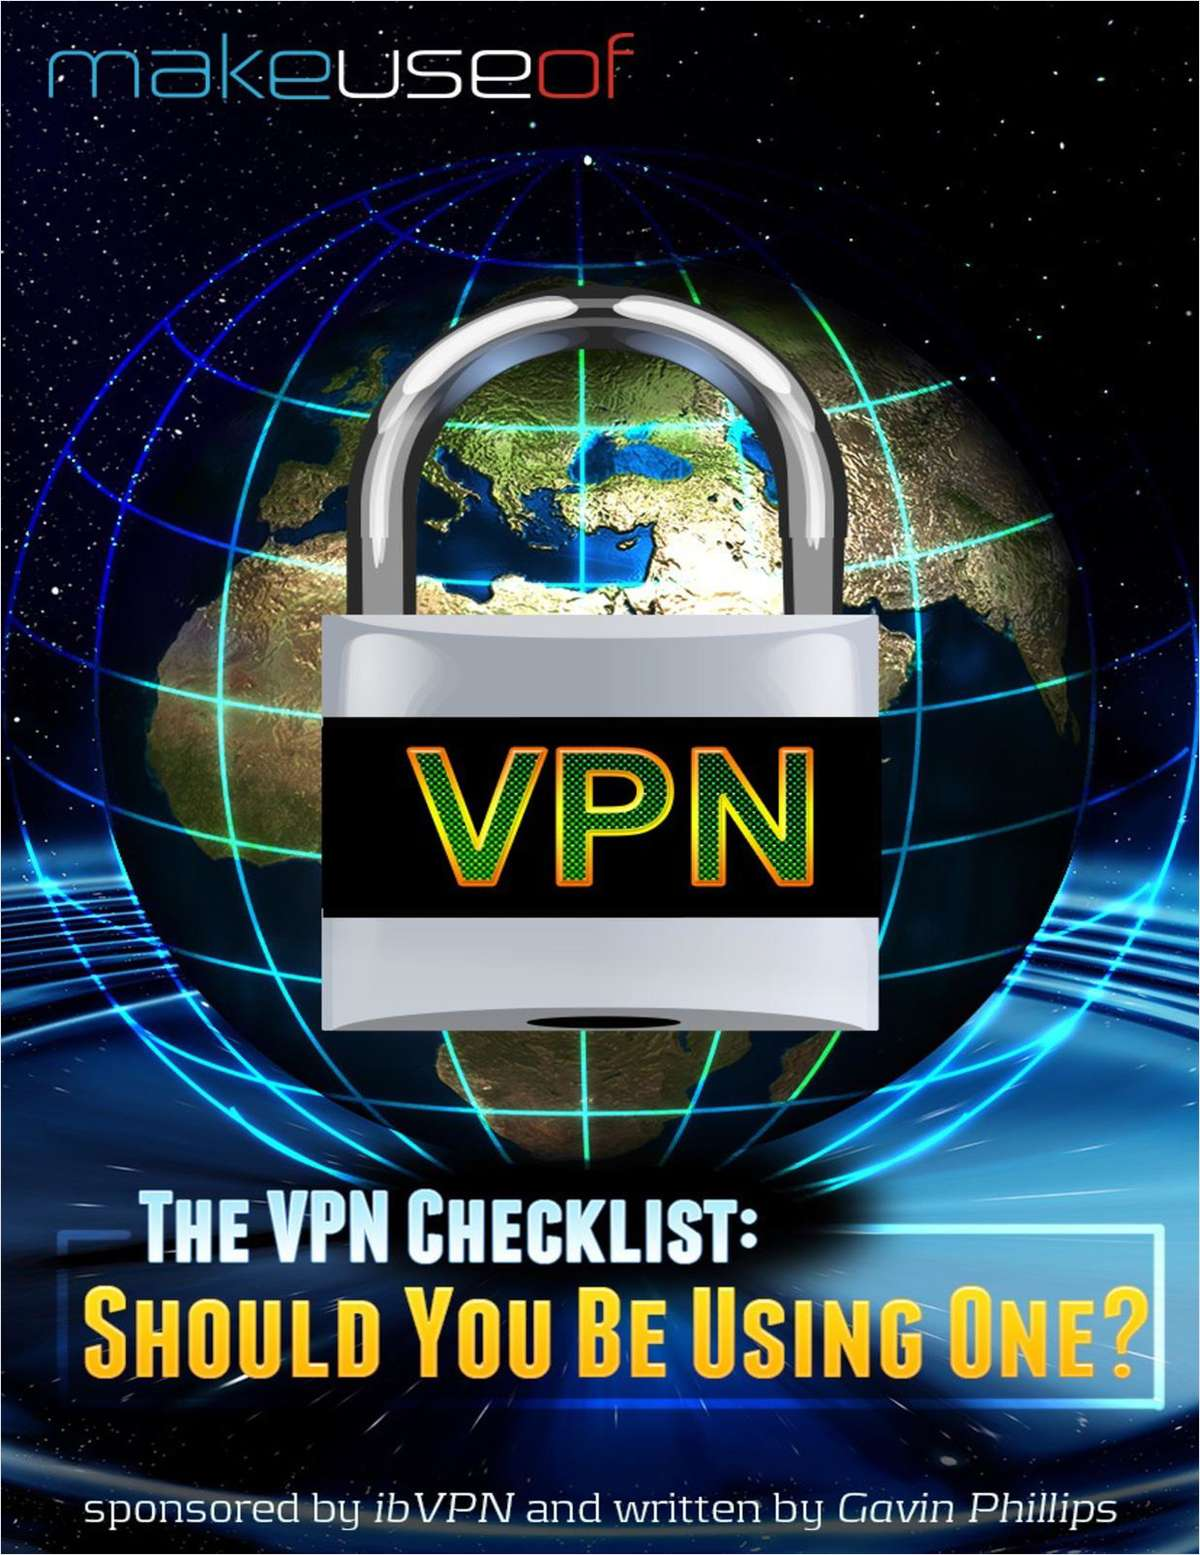 The VPN Checklist: Should You Be Using One?